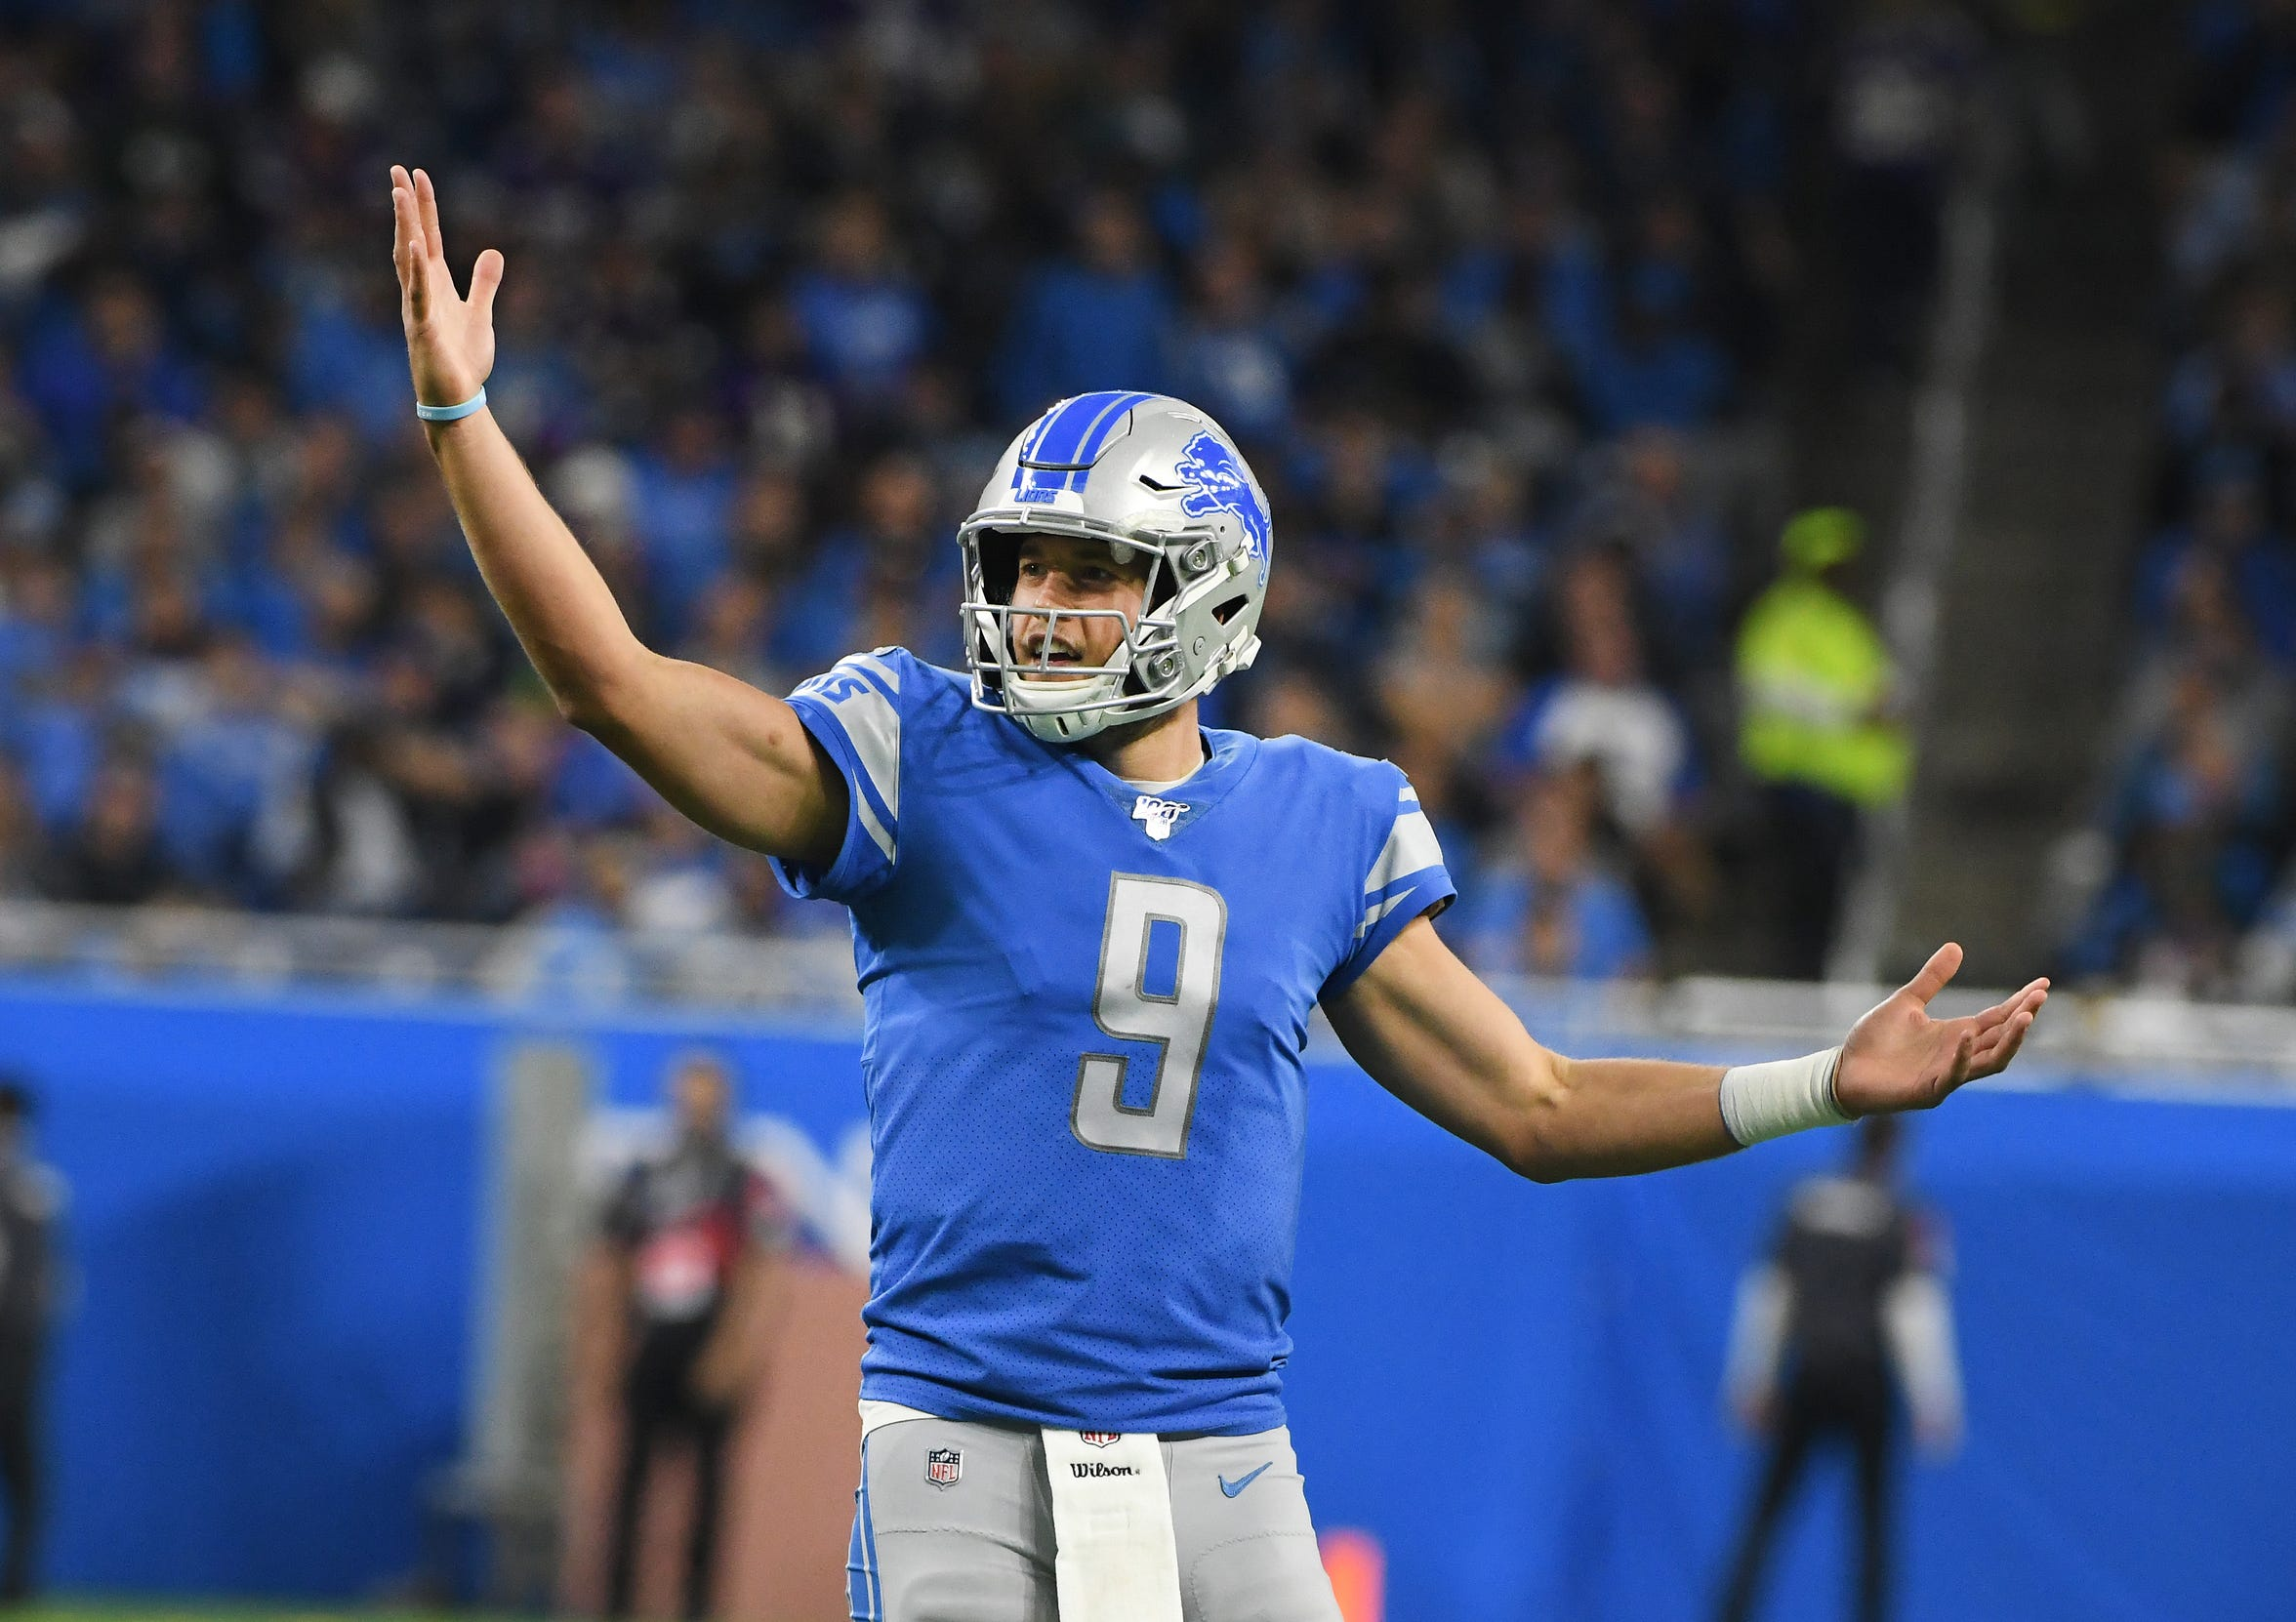 The Lions and quarterback Matthew Stafford are 3-5-1, and appear to be headed to another season without a playoff appearance.